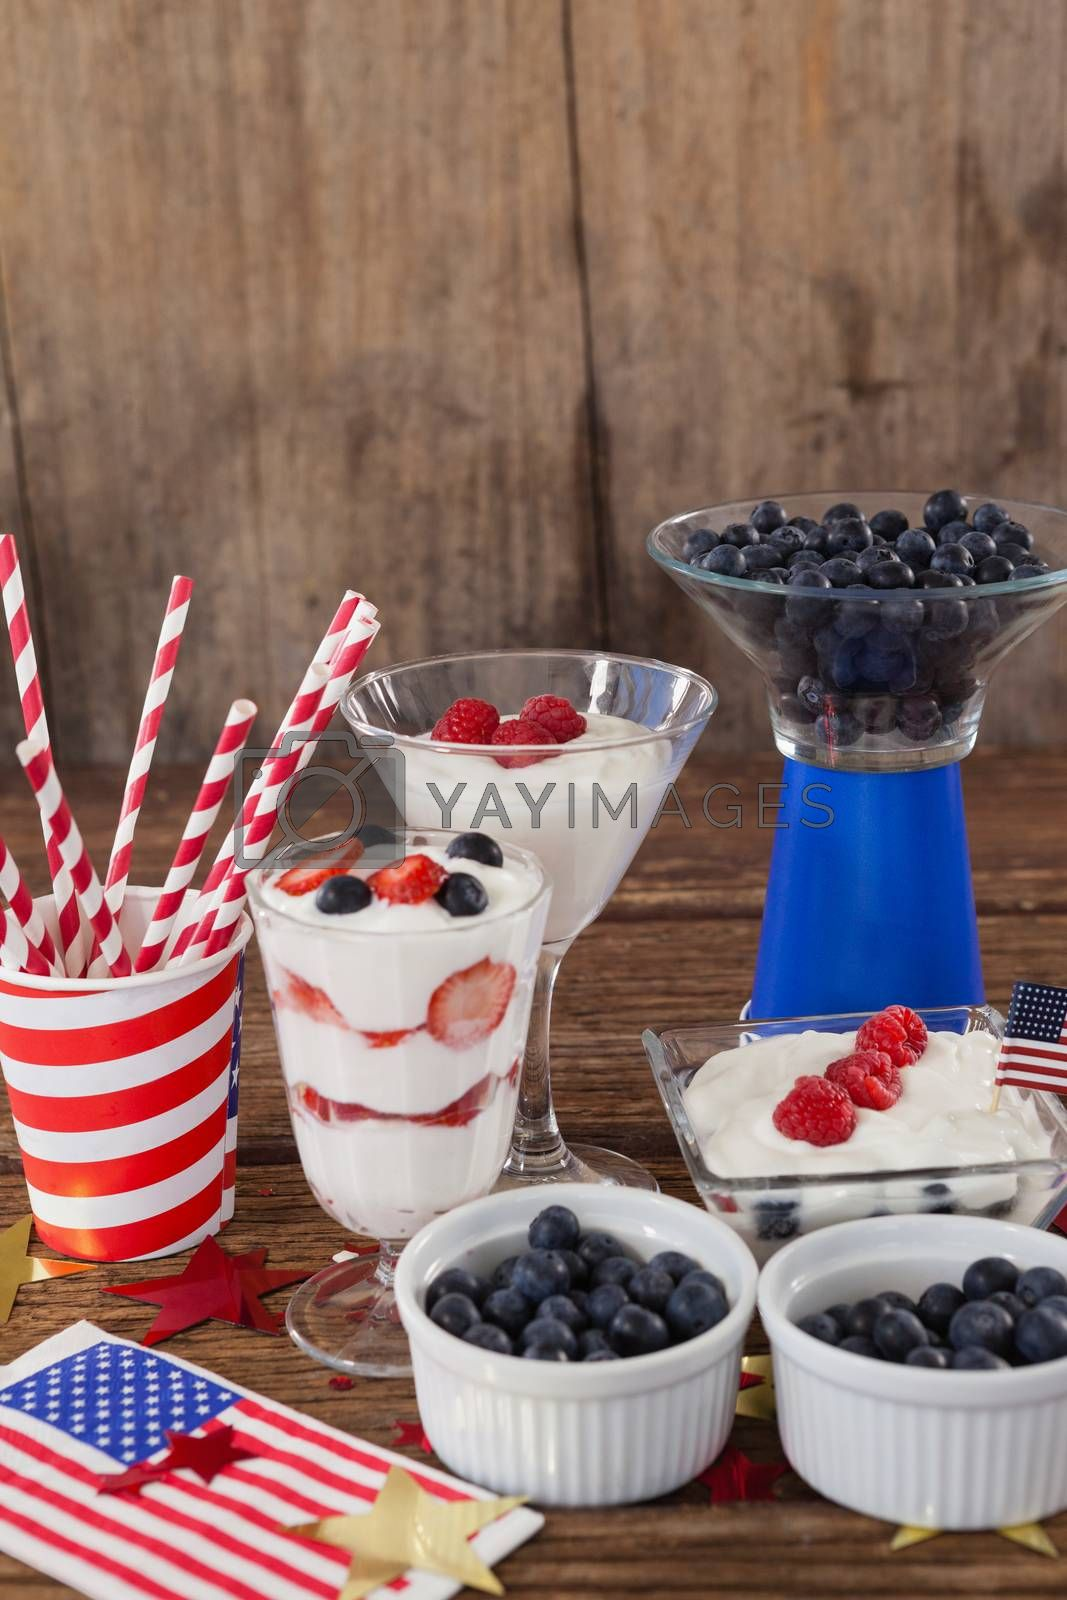 Royalty free image of Fruits and ice cream with 4th july theme by Wavebreakmedia